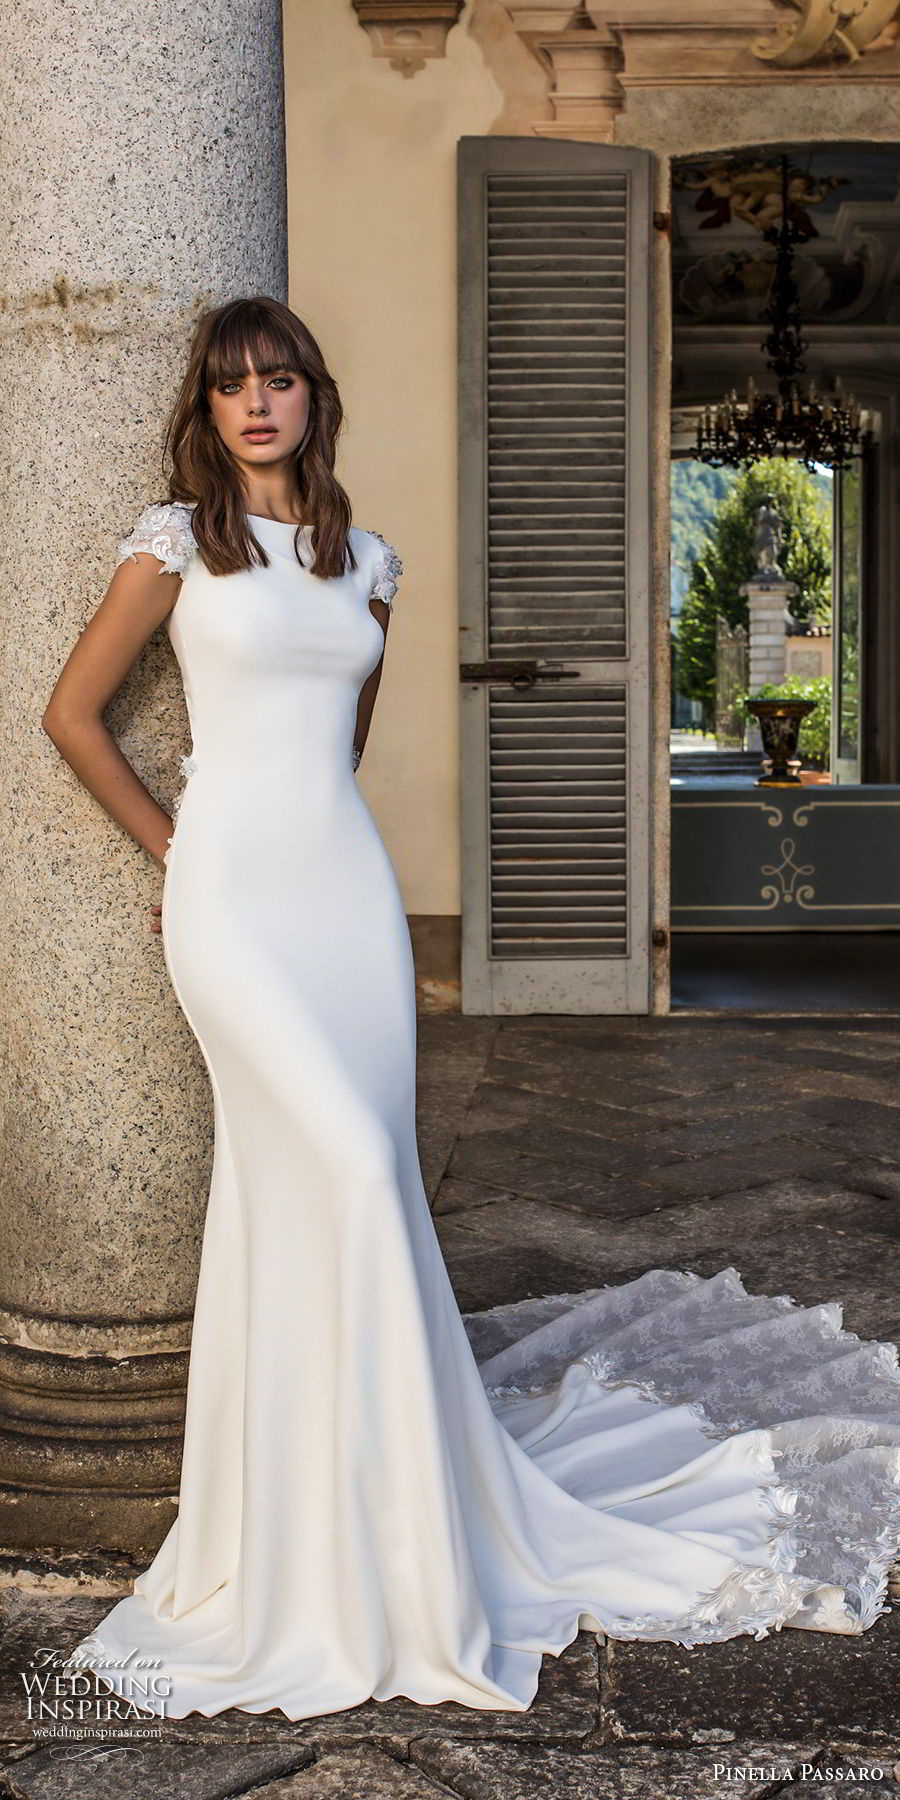 pinella passaro 2018 bridal cap sleeves bateau neck simple clean elegant classy fit and flare sheath wedding dress keyhole back chapel train (12) mv